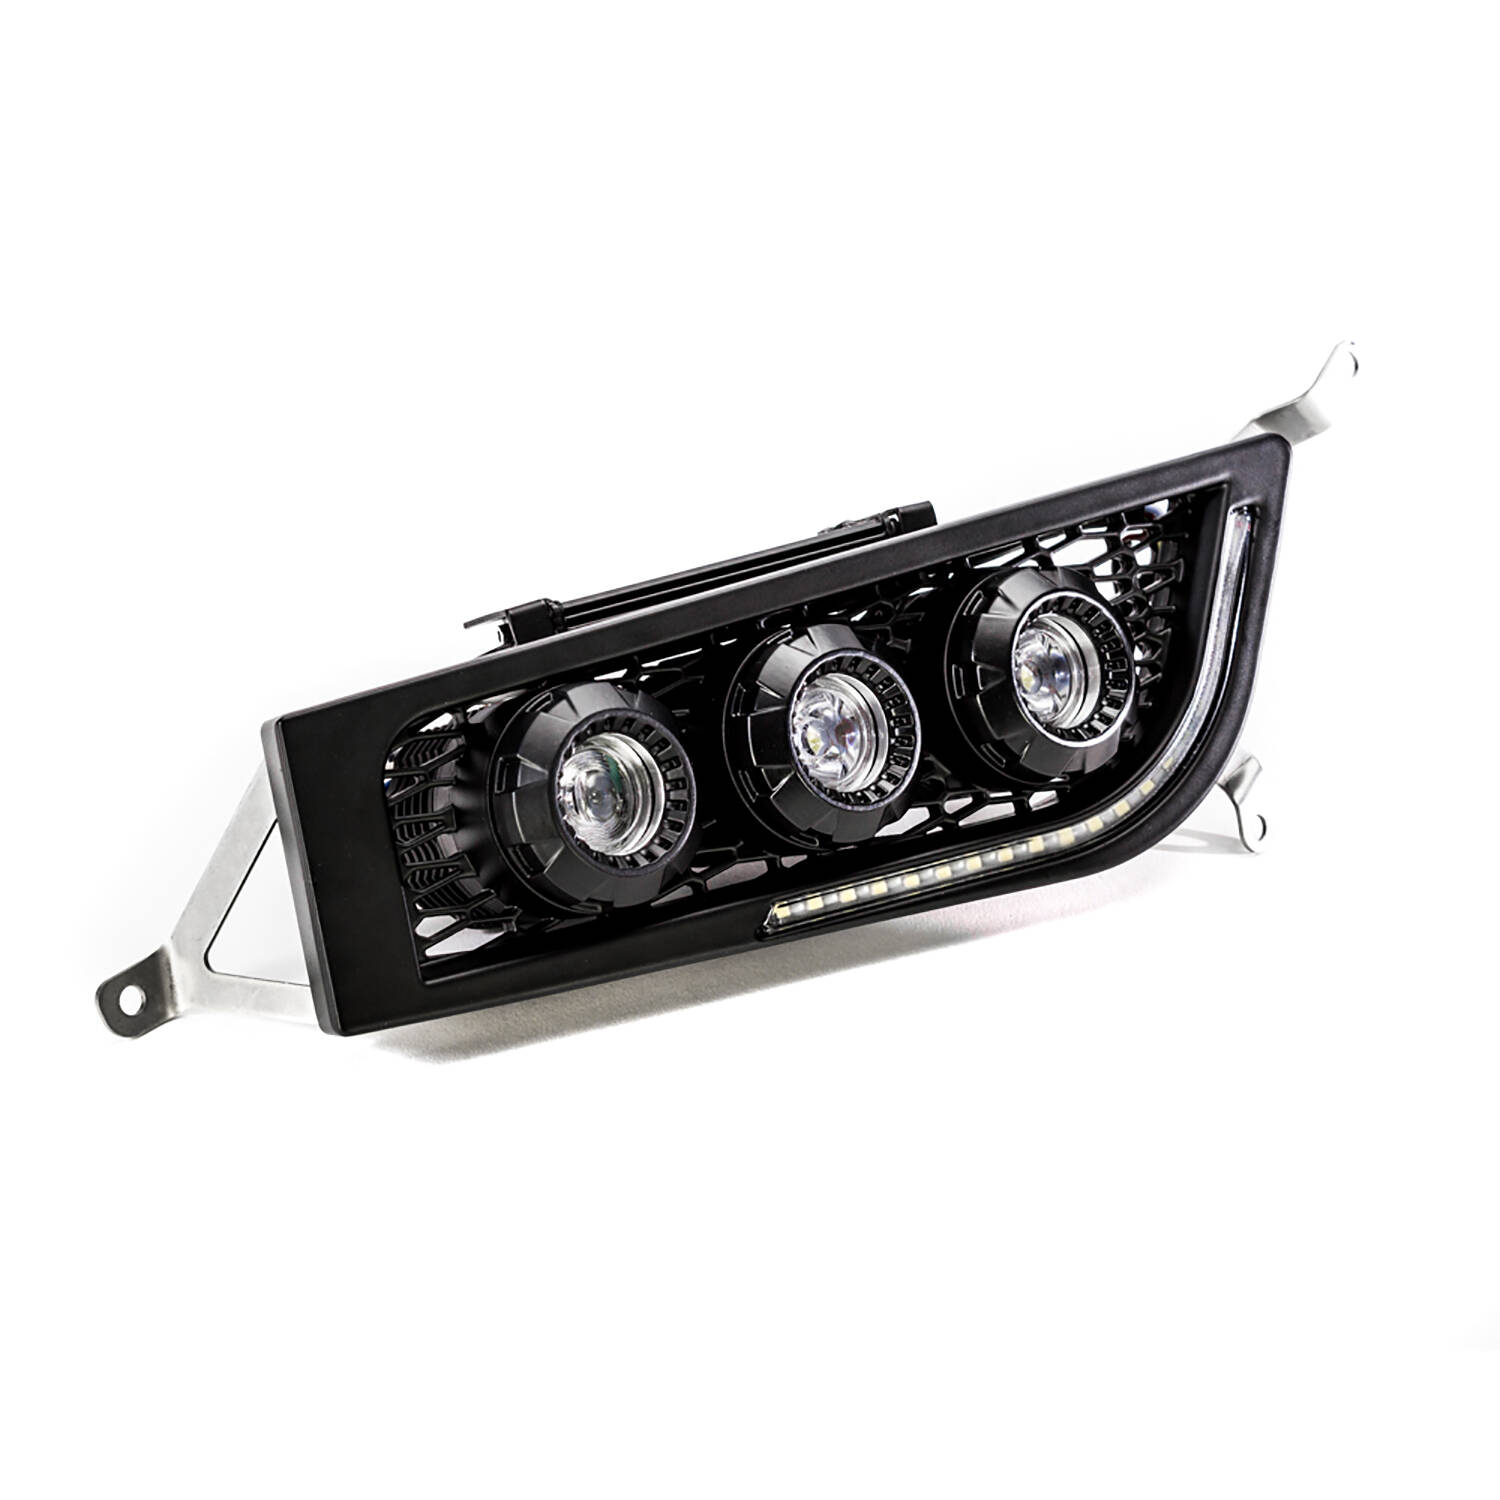 Trailblazer LED Adjustable Headlights